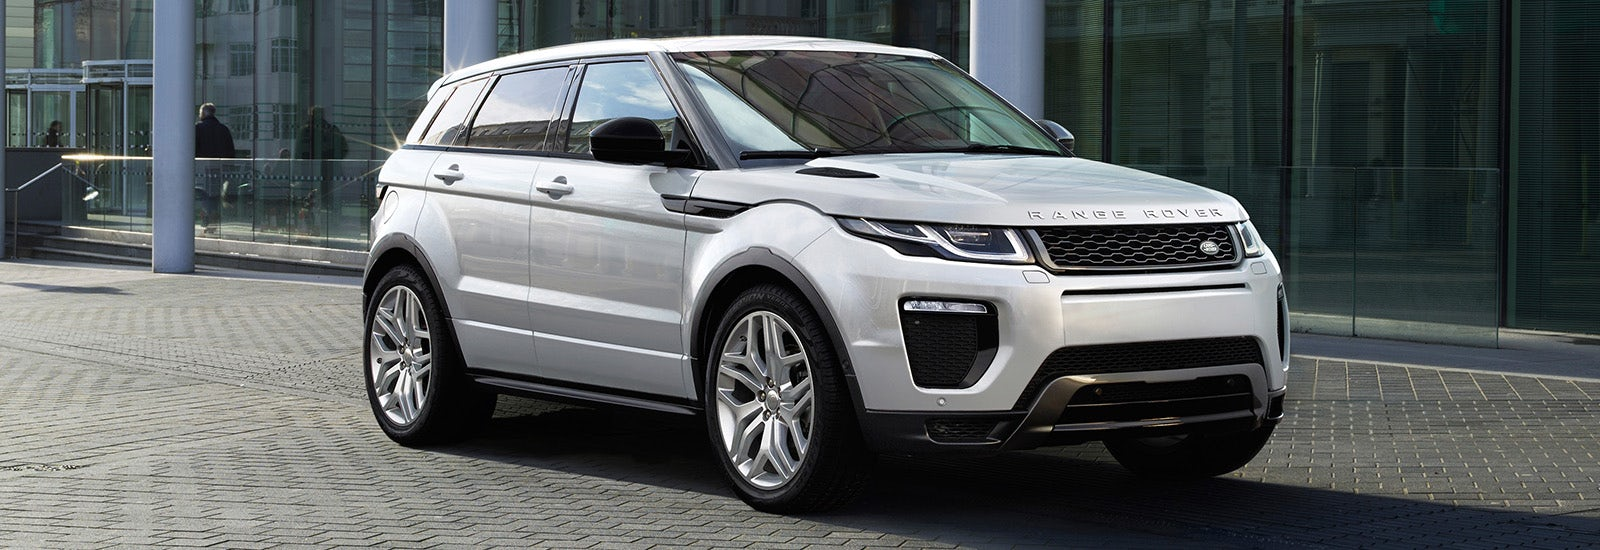 Used Range Rovers >> Who makes Range Rover and Land Rover? | carwow